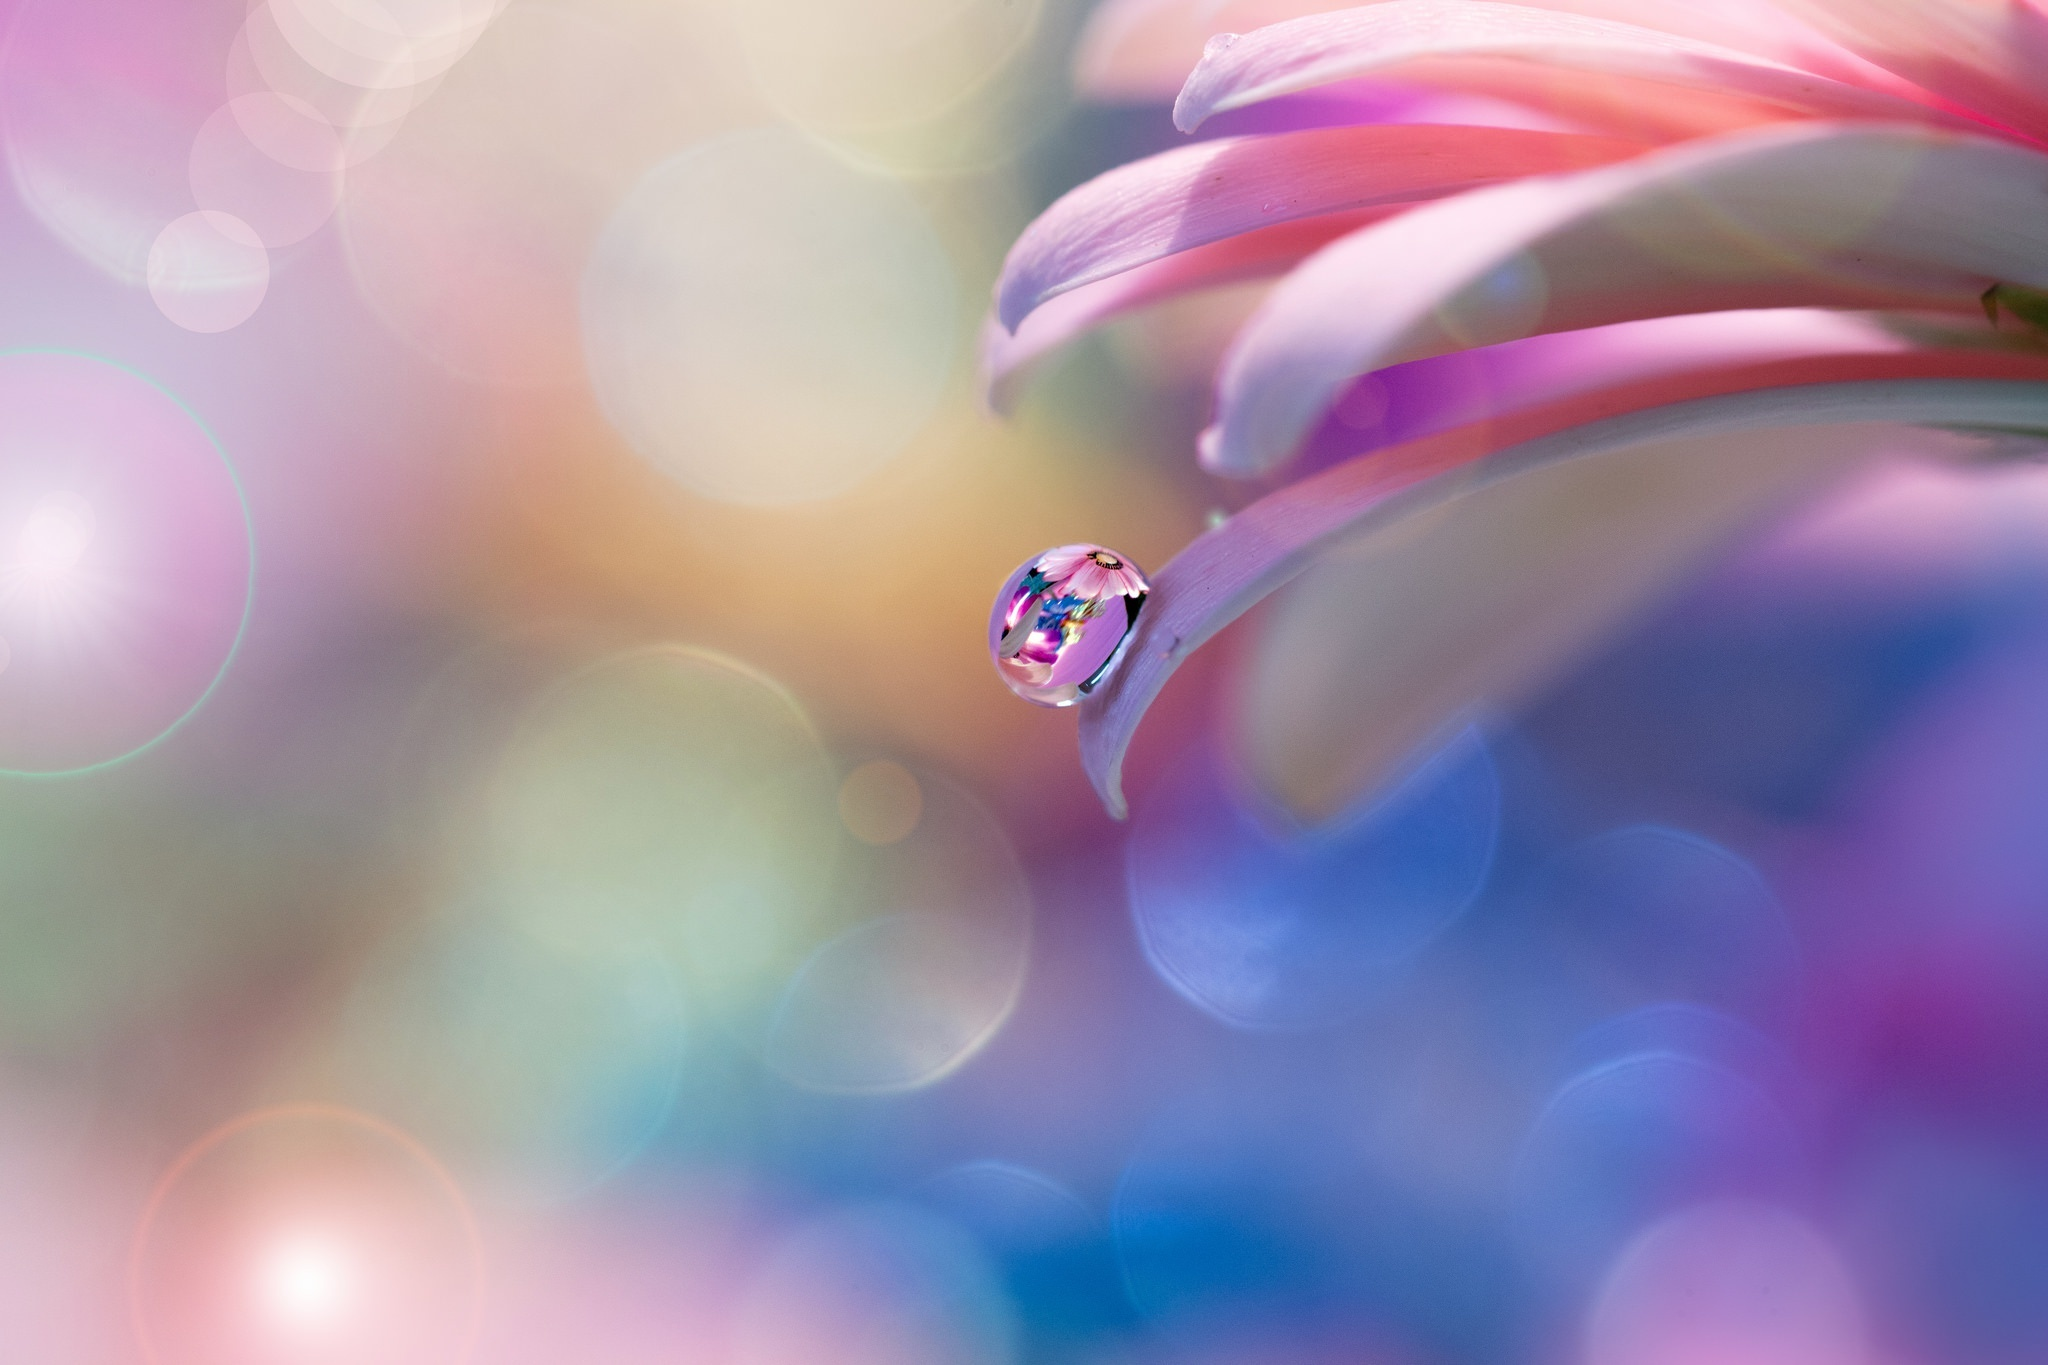 Image: Drop, water, reflection, dew, flower, glare, color